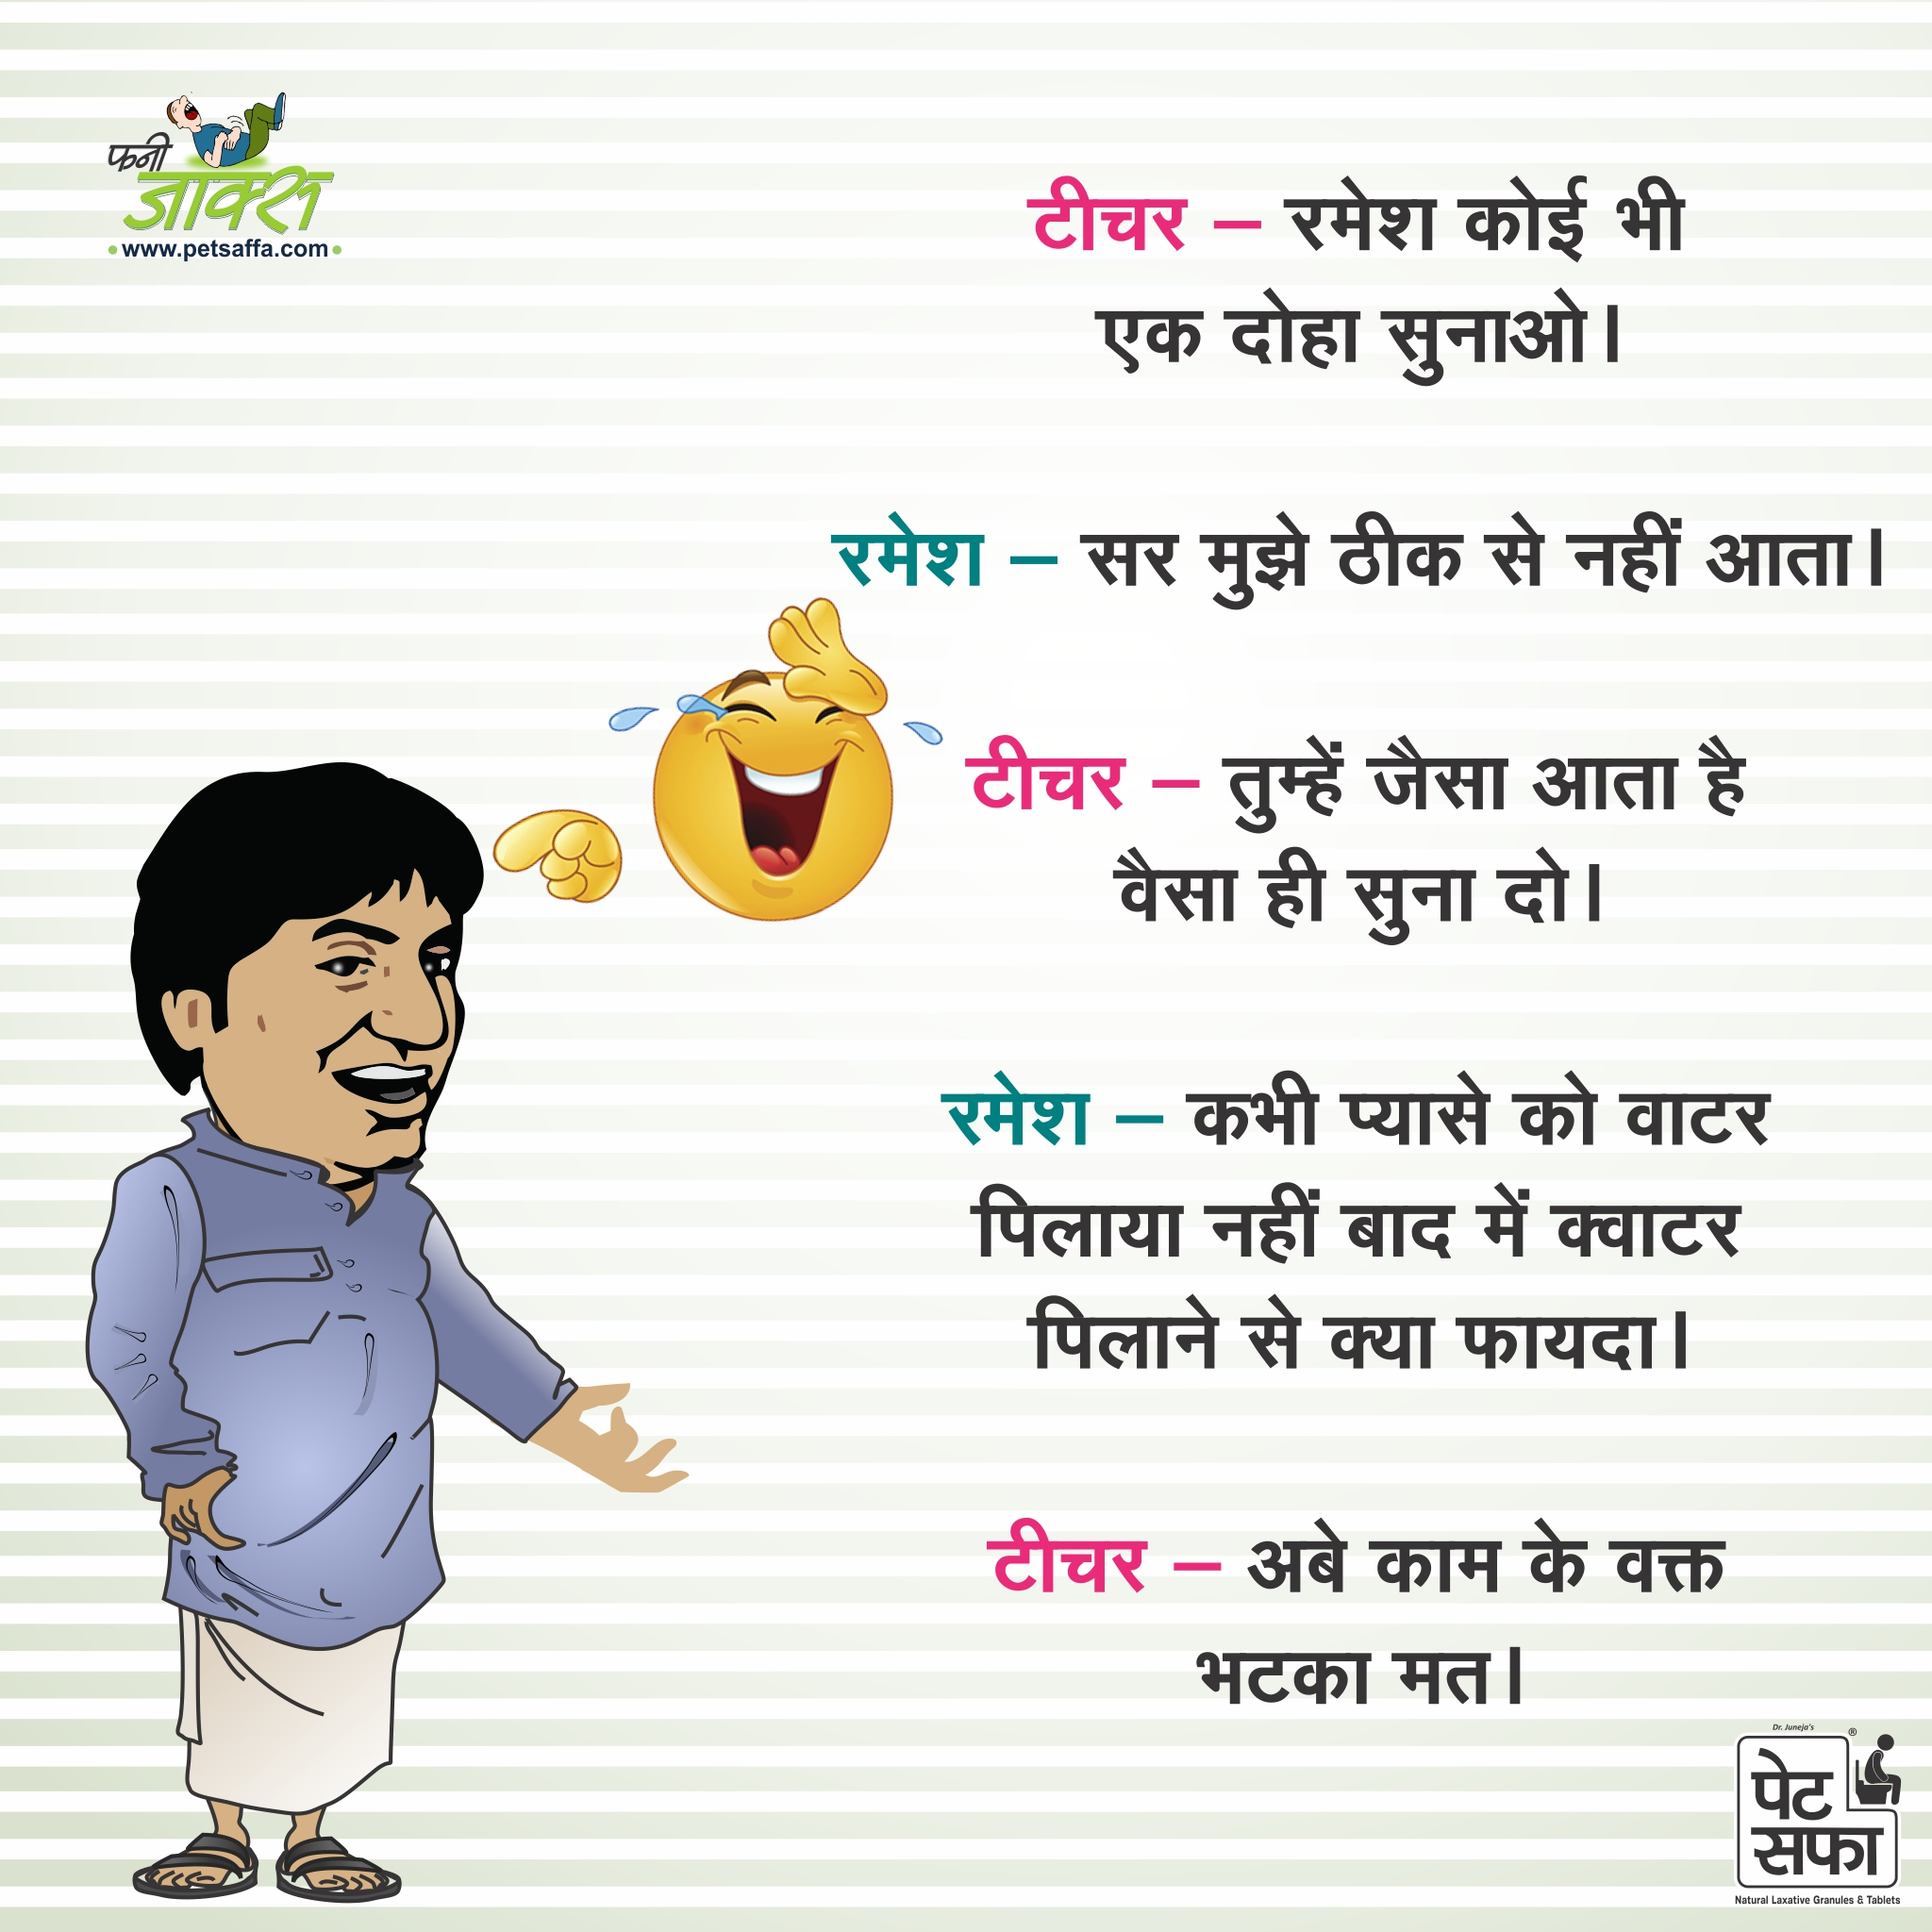 Hindi Jokes-Jokes in Hindi-Funny Jokes